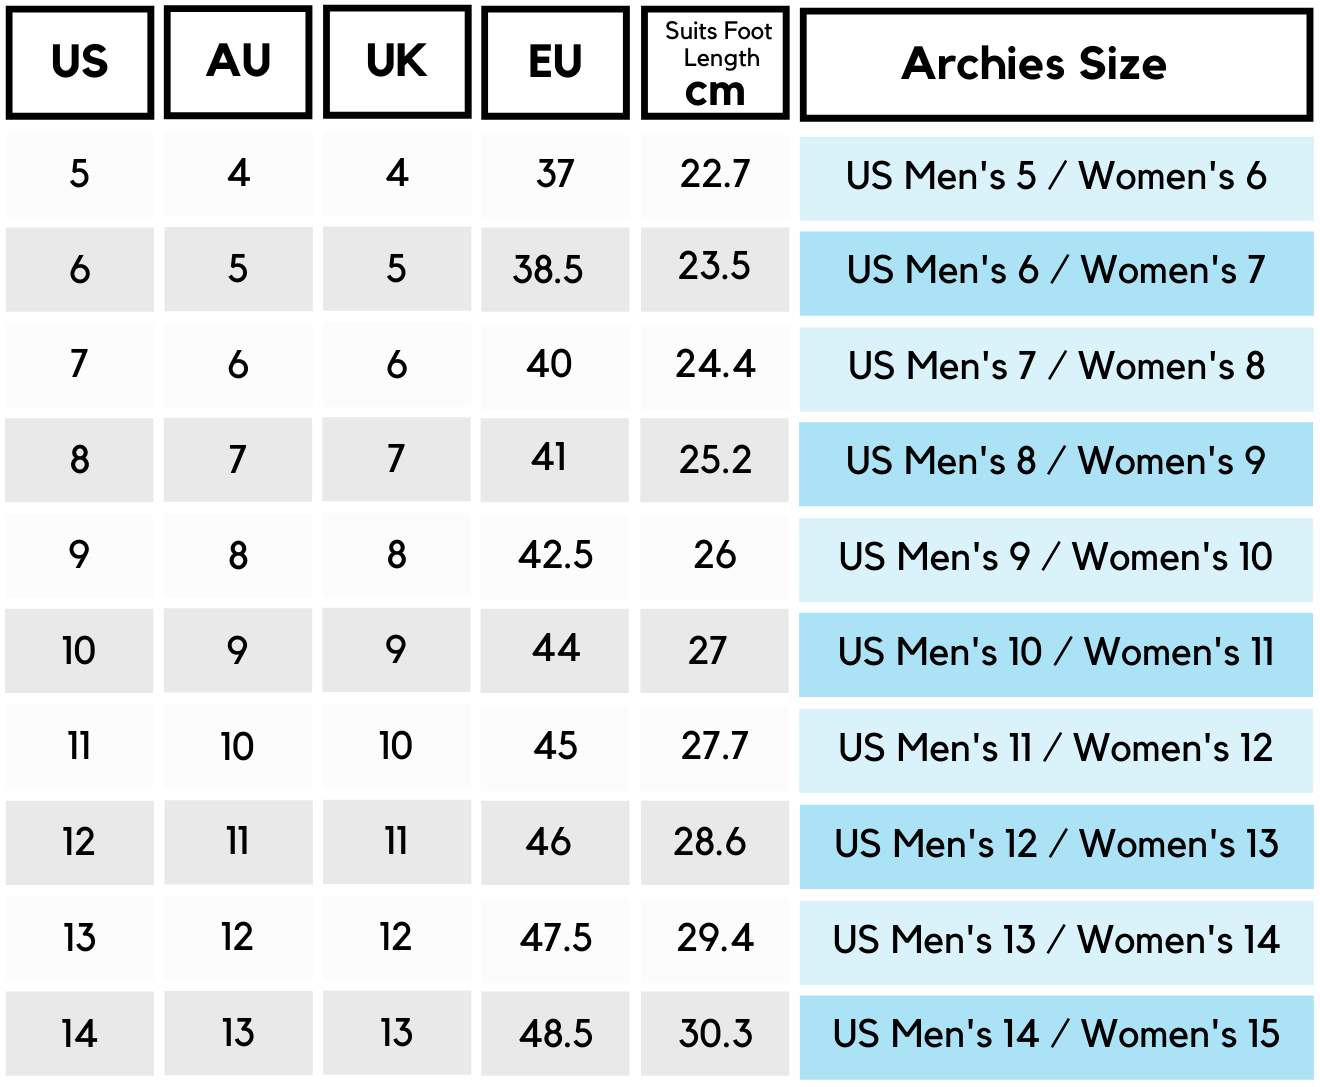 AU Archies Men's Size Chart